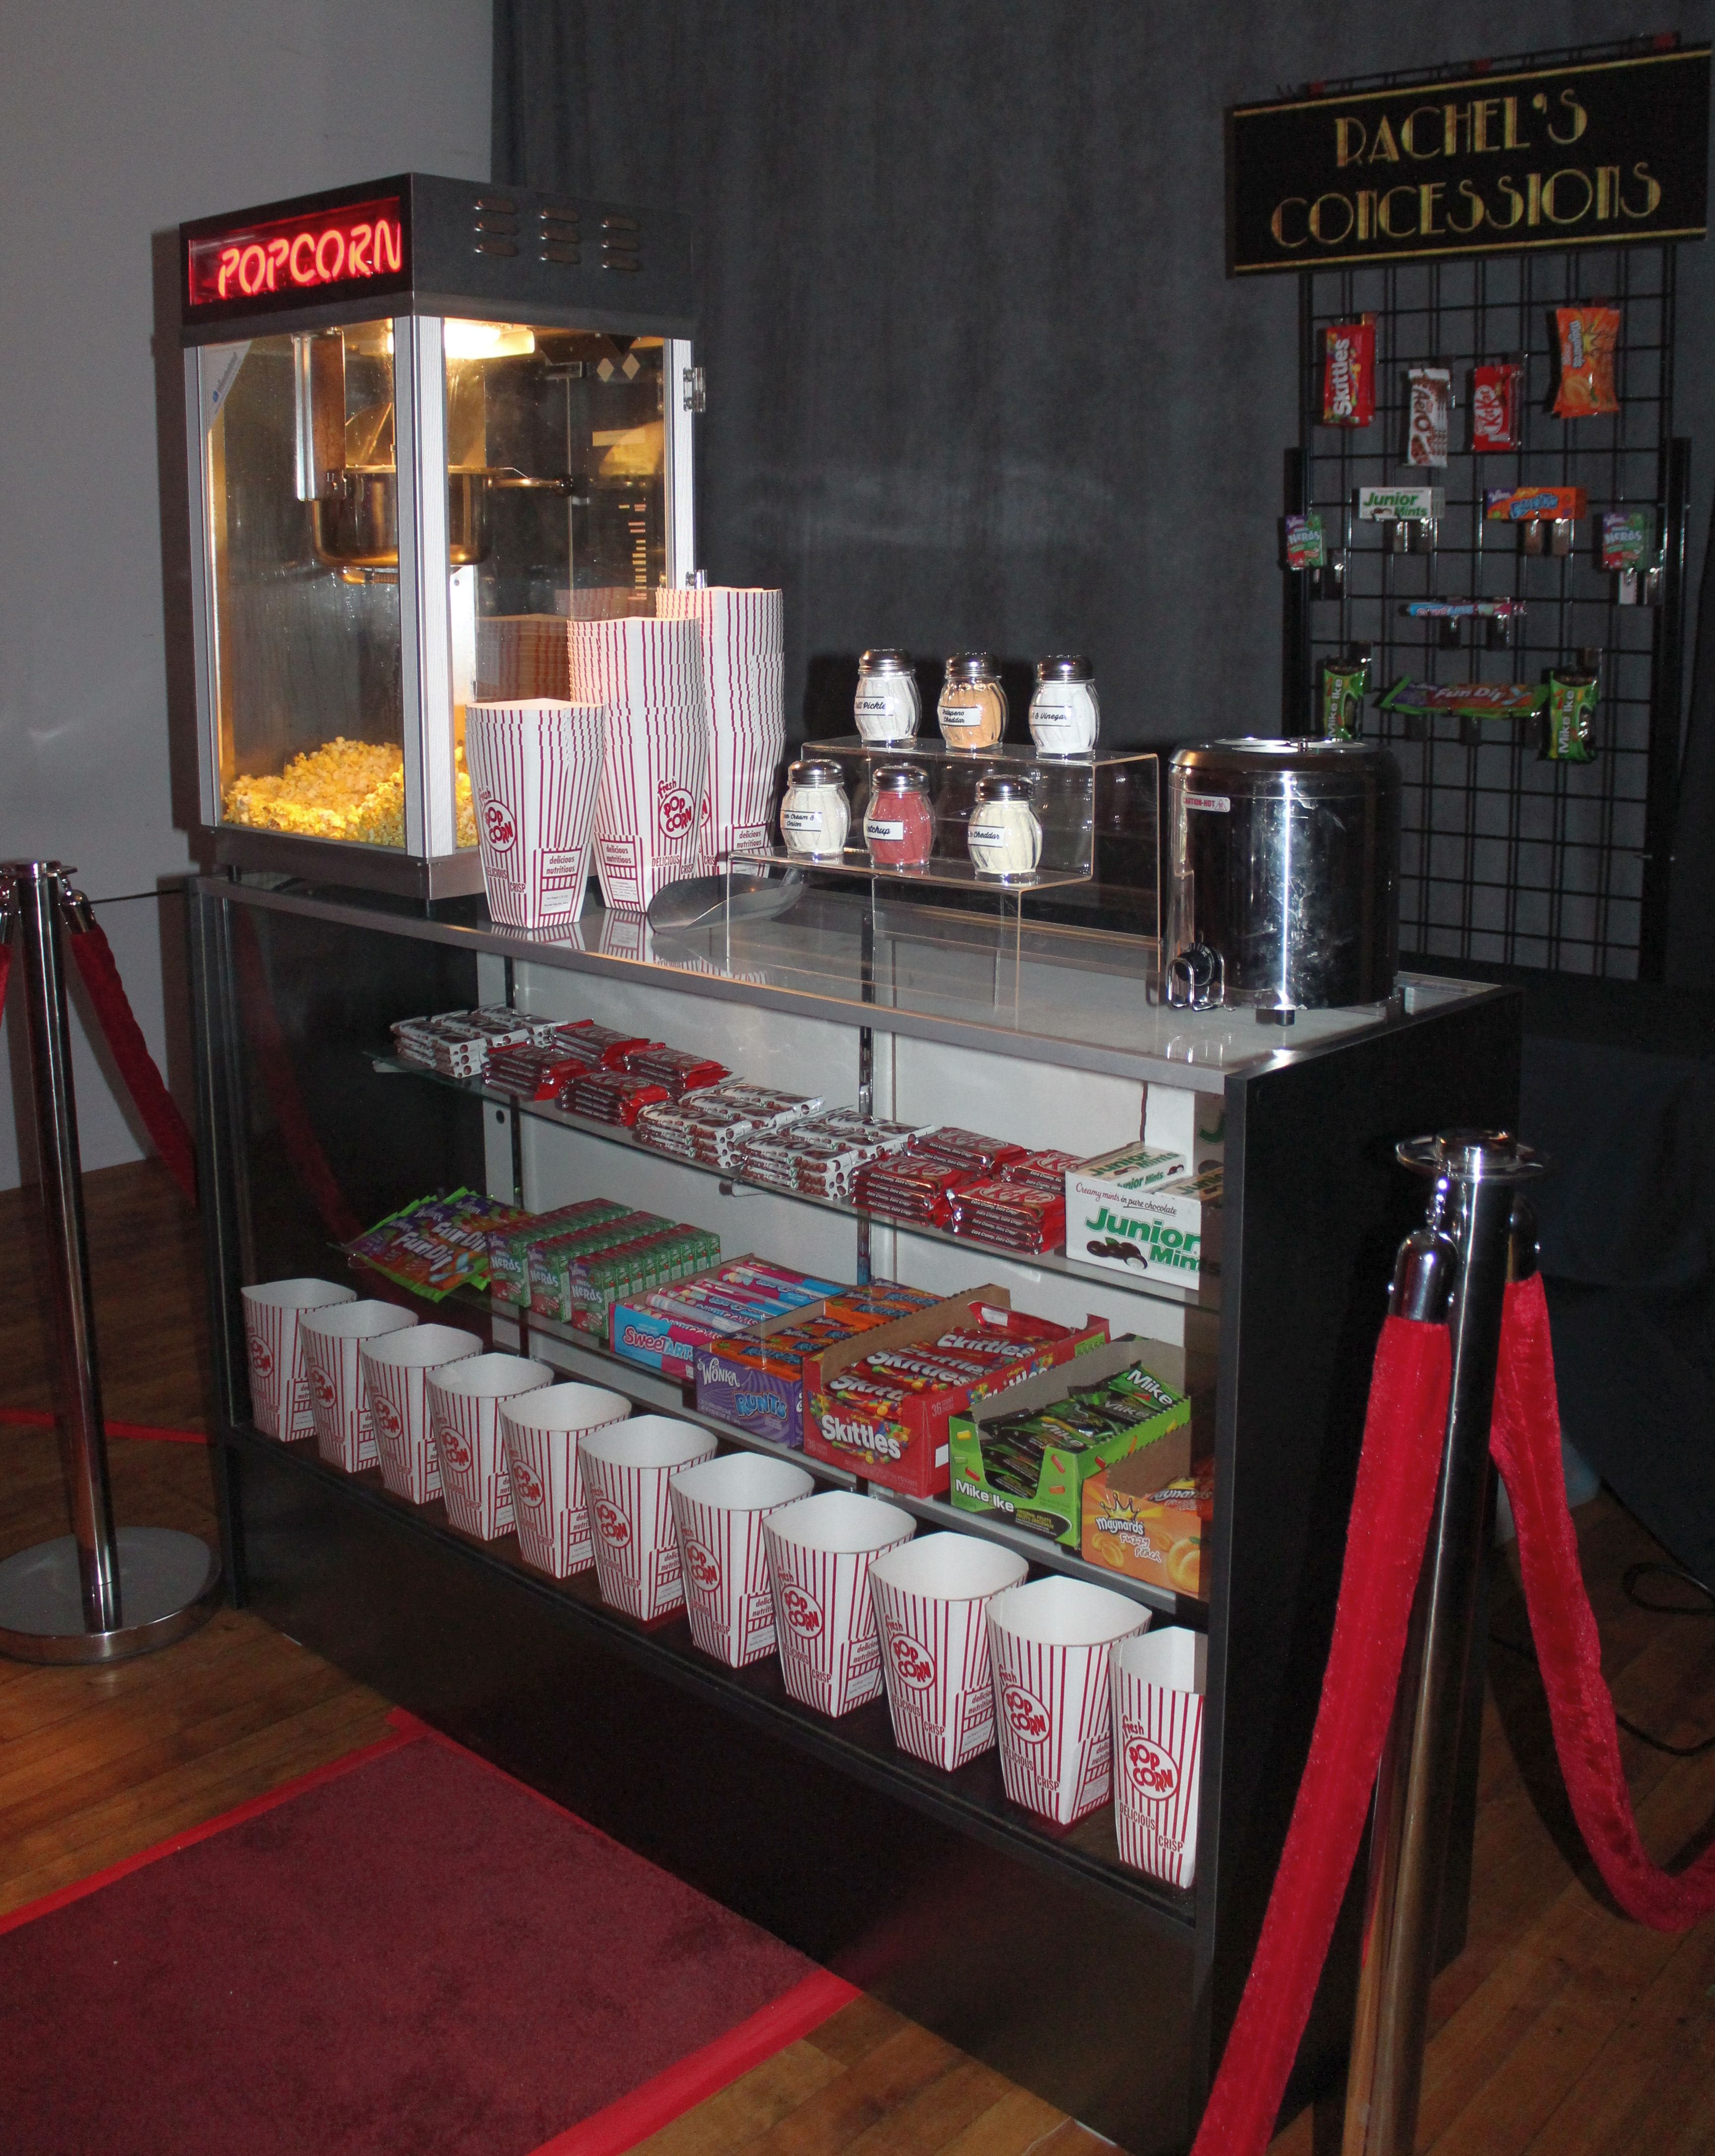 Pop S Concessions Creates A Fun Movie Theatre Vibe Complete With Candy Popcorn And Snacks With At Home Movie Theater Home Theater Seating Theater Room Decor